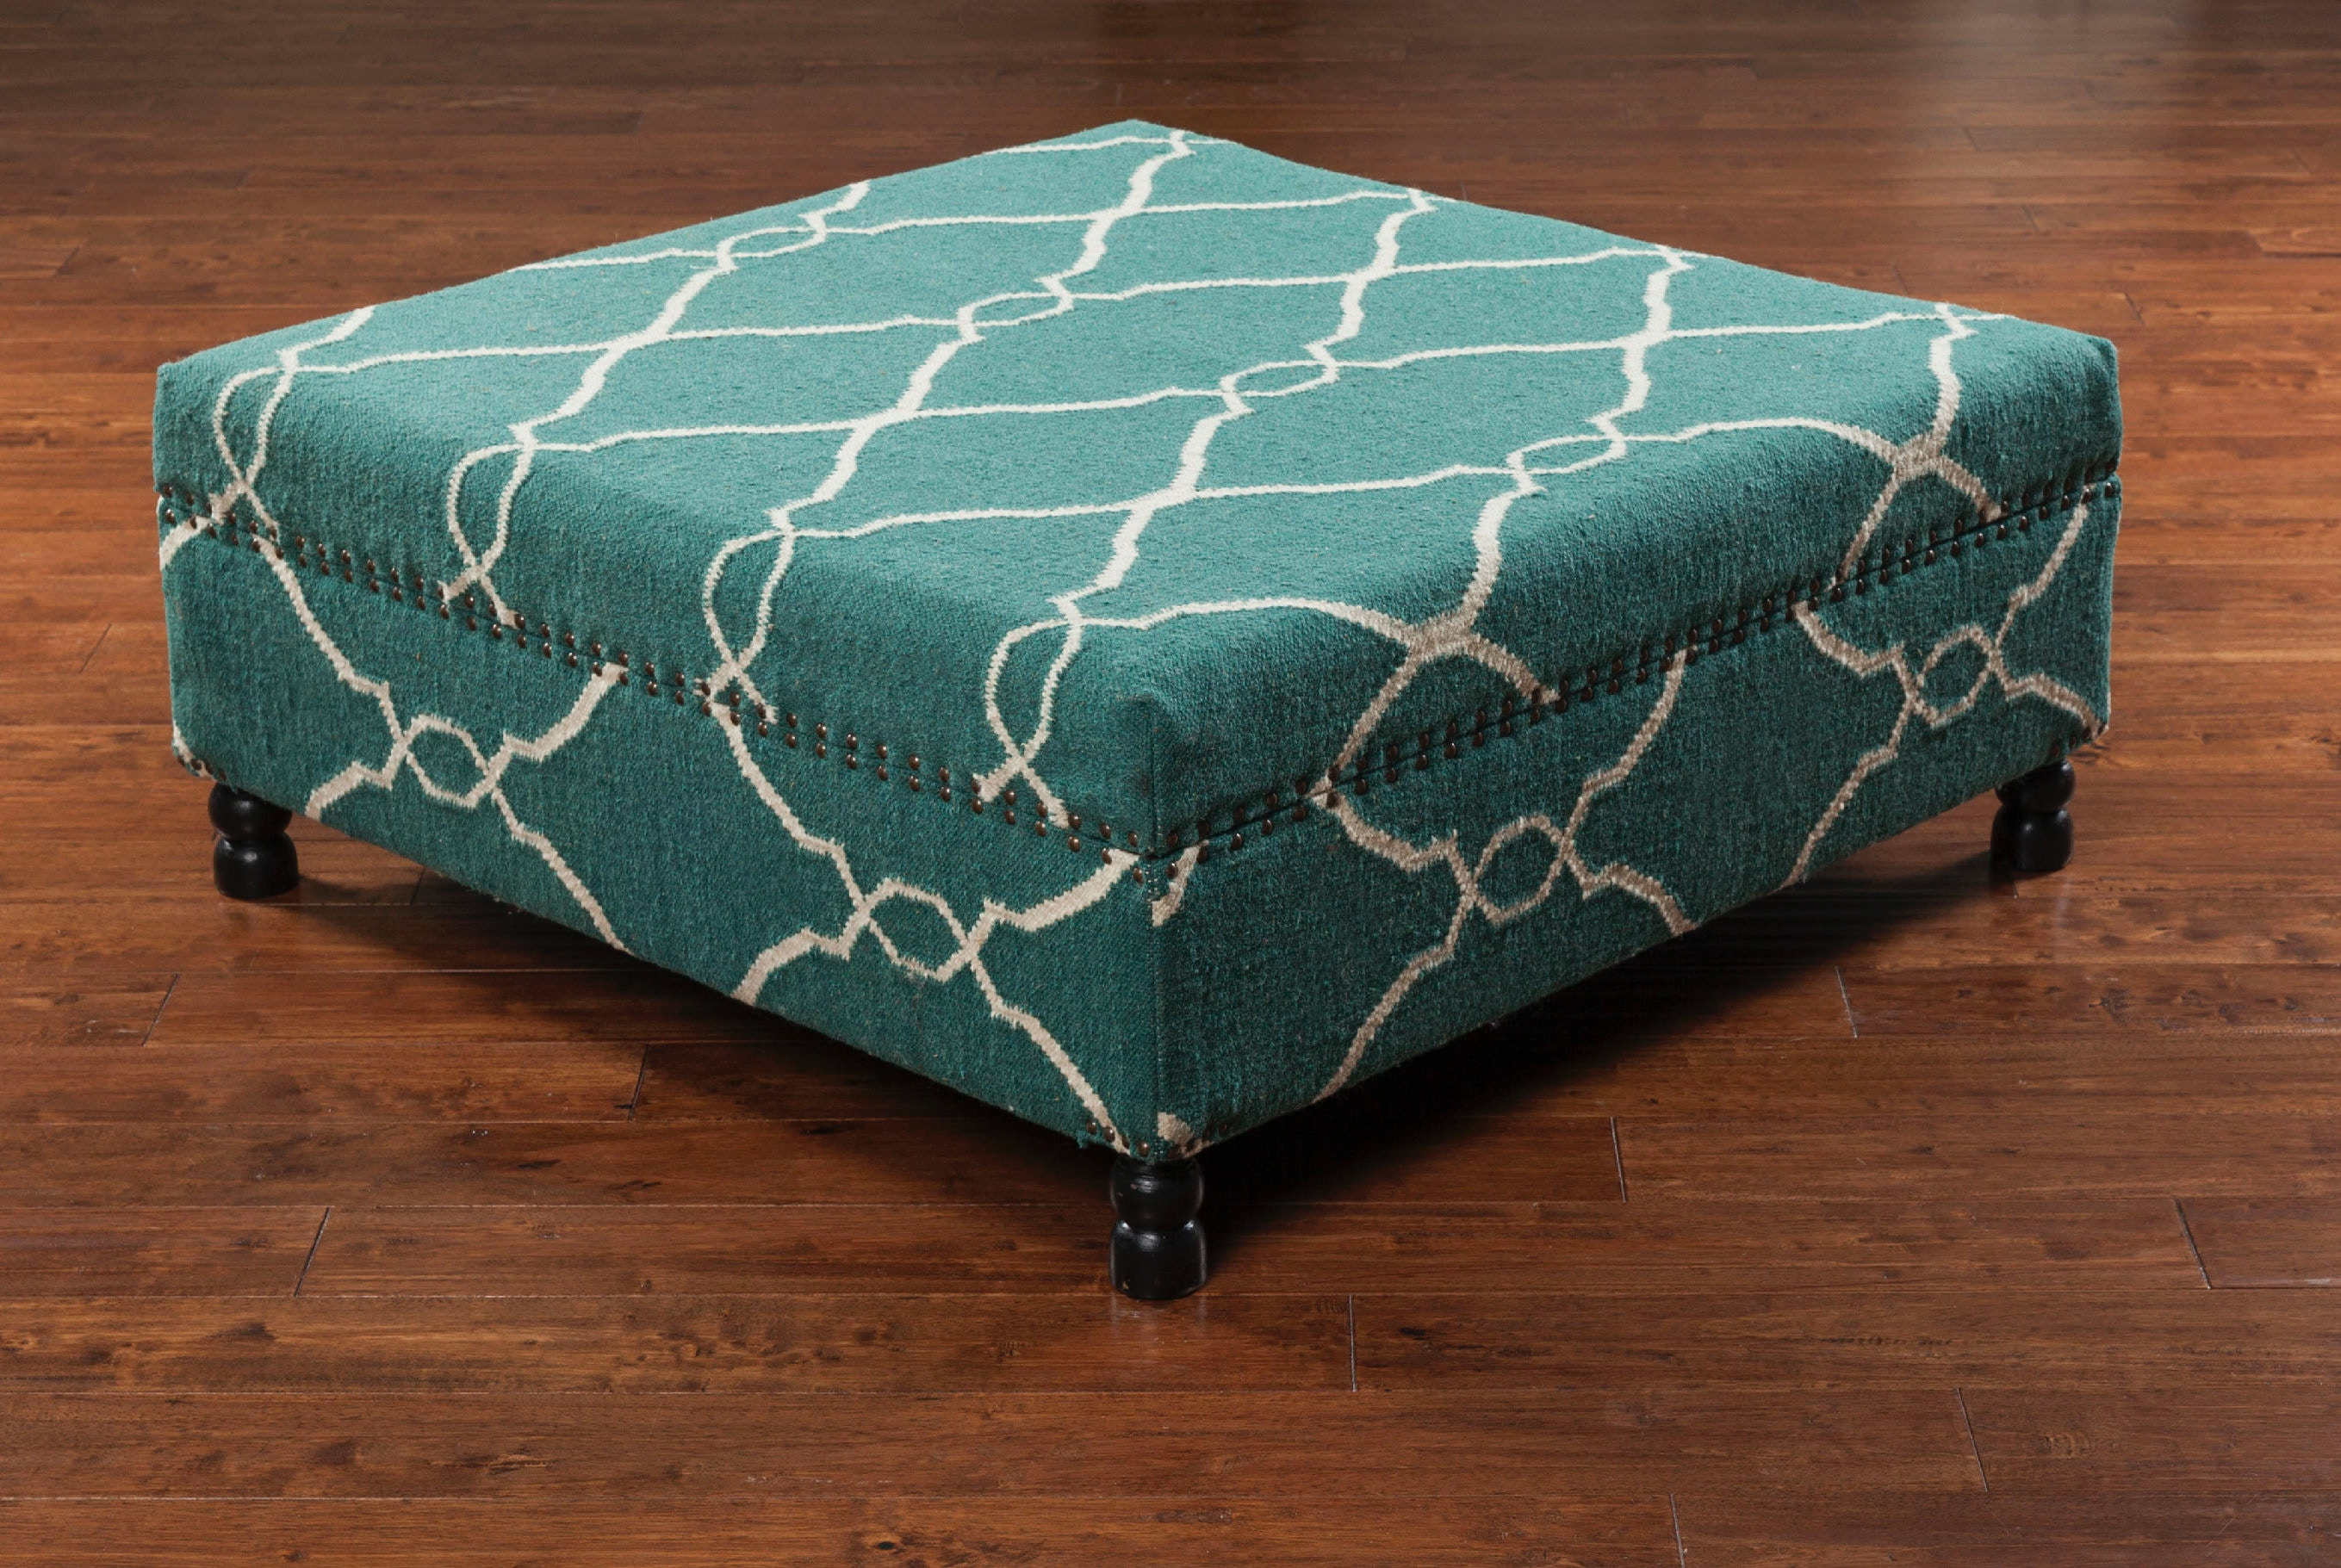 Surya Furniture 40 X 40 X 16 Ottoman FL1008 404016 From Walter E. Smithe